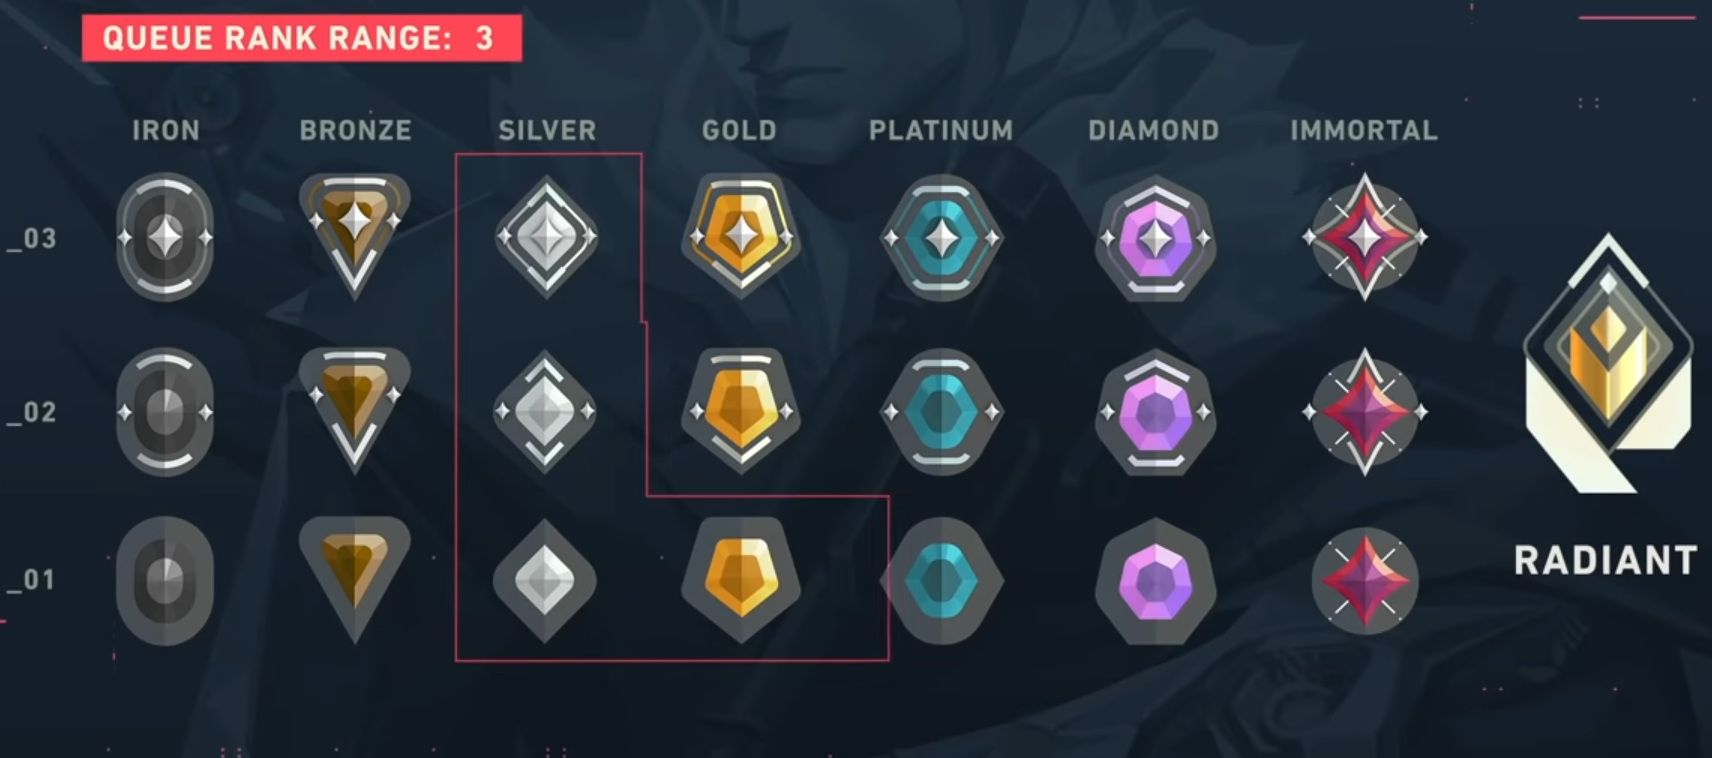 "Rank graph showing ""queue range rank: 3"", with Silver 1, Silver 2, Silver 3, and Gold 1 circled"